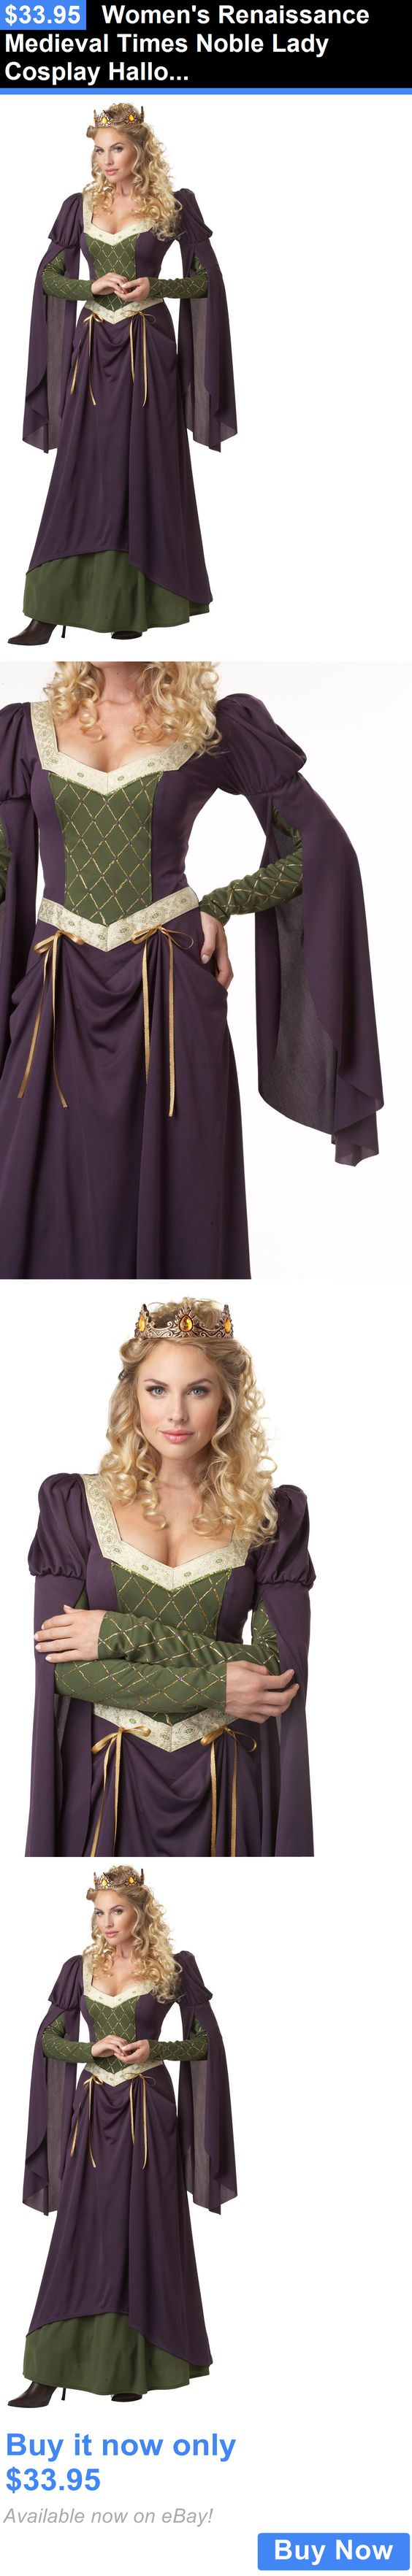 Halloween Costumes Women: Womens Renaissance Medieval Times Noble Lady Cosplay Halloween Costume BUY IT NOW ONLY: $33.95